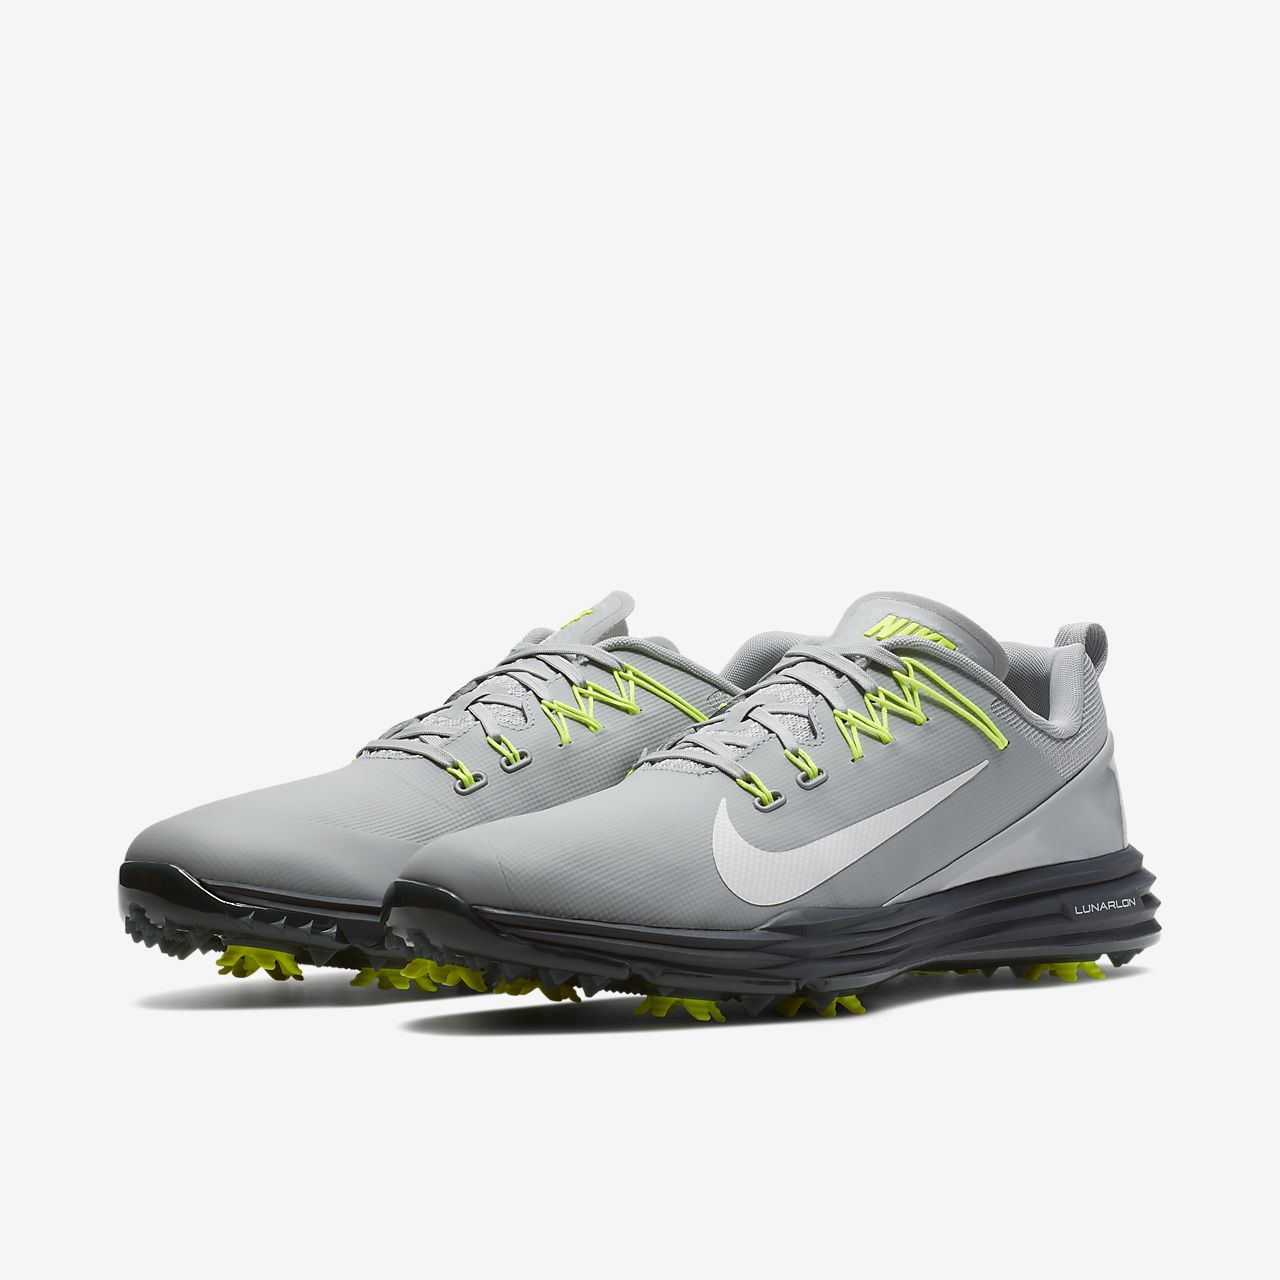 ... Nike Lunar Command 2 Men's Golf Shoe